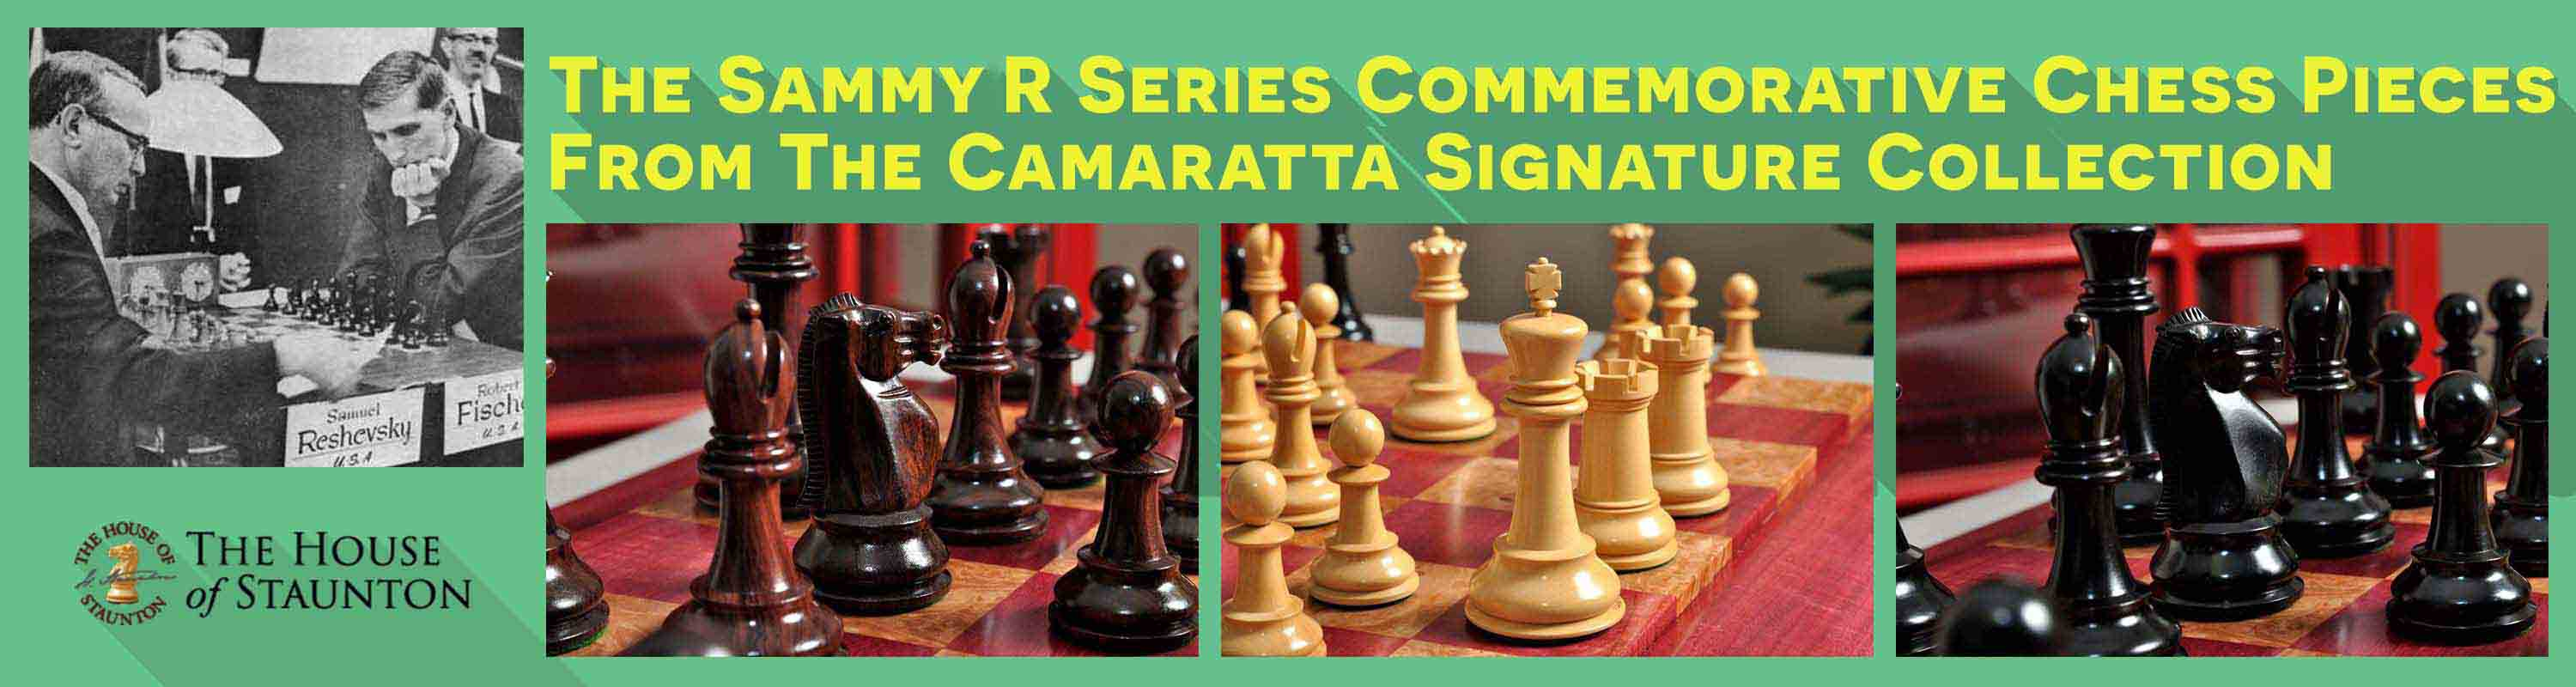 The Sammy R Series Commemorative Chess Pieces from the Camaratta Signature Collection